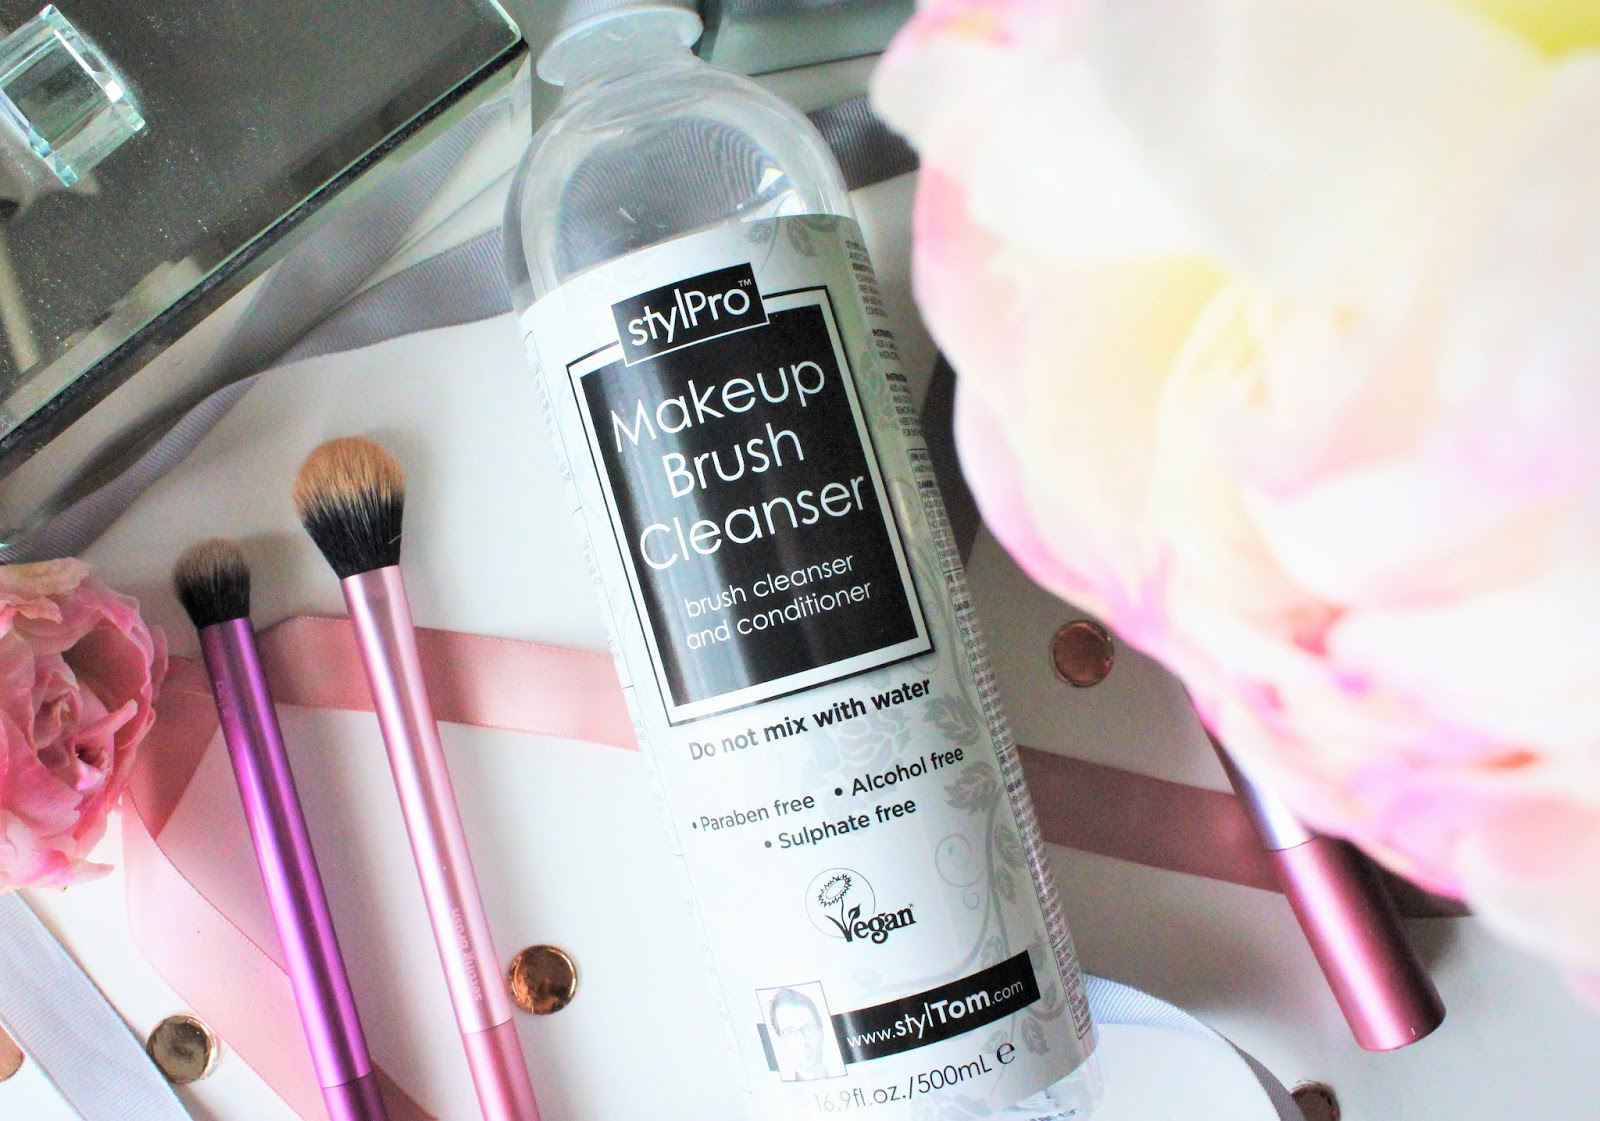 STYLPRO makeup brush cleanser review